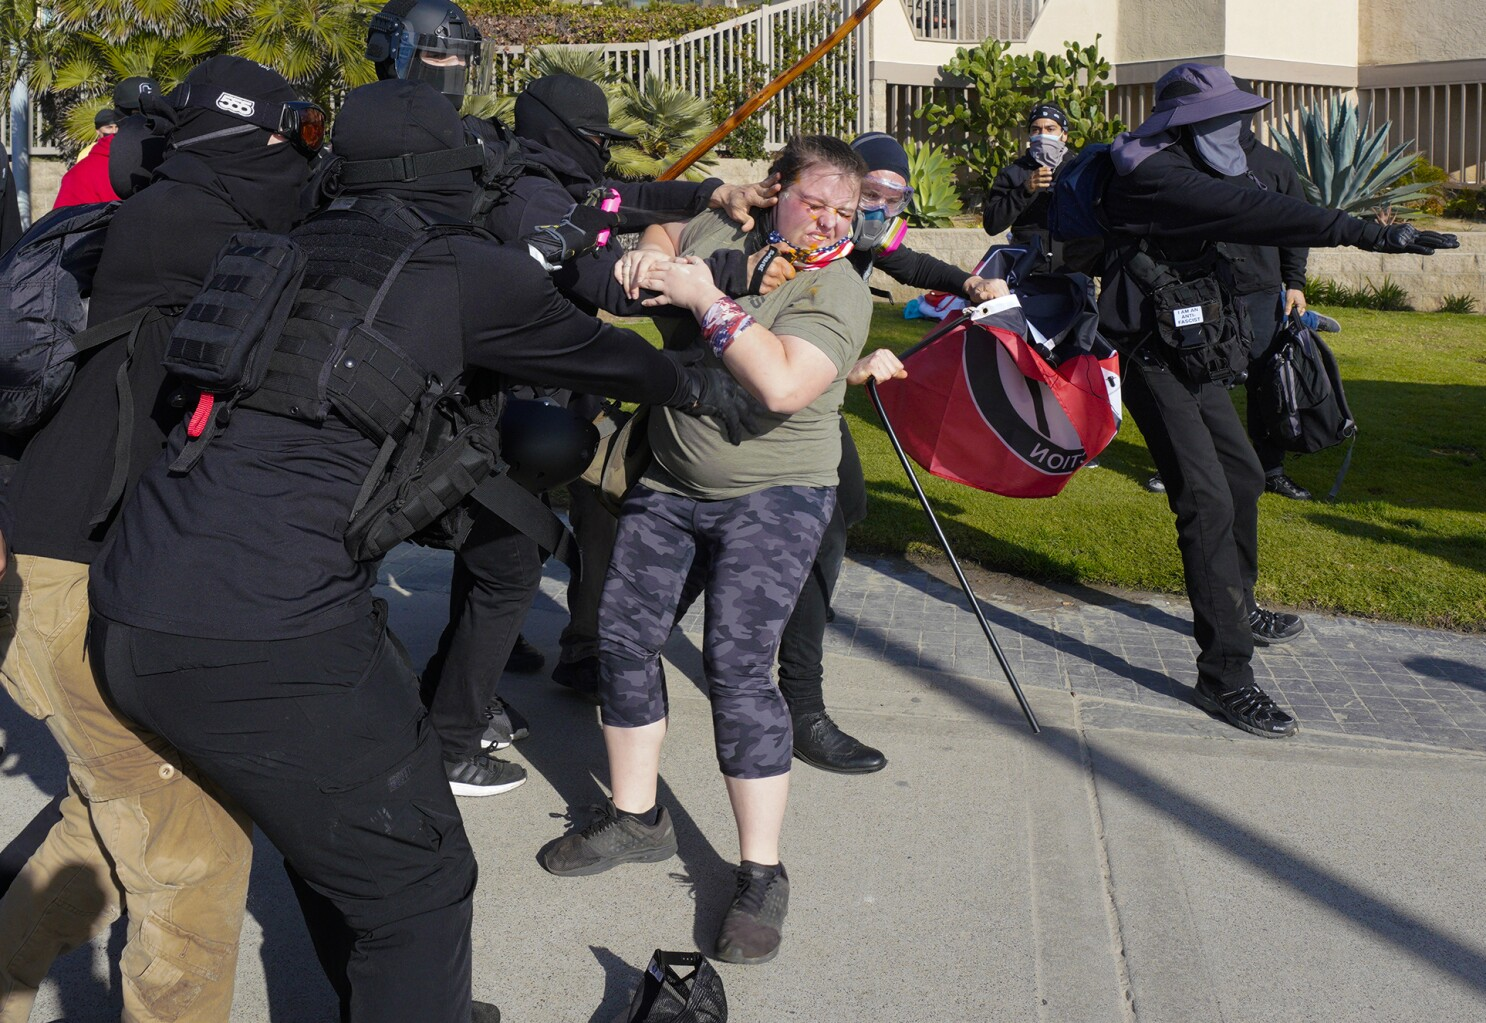 WATCH:VIDEO: Antifa mob attacks Trump supporters in San Diego